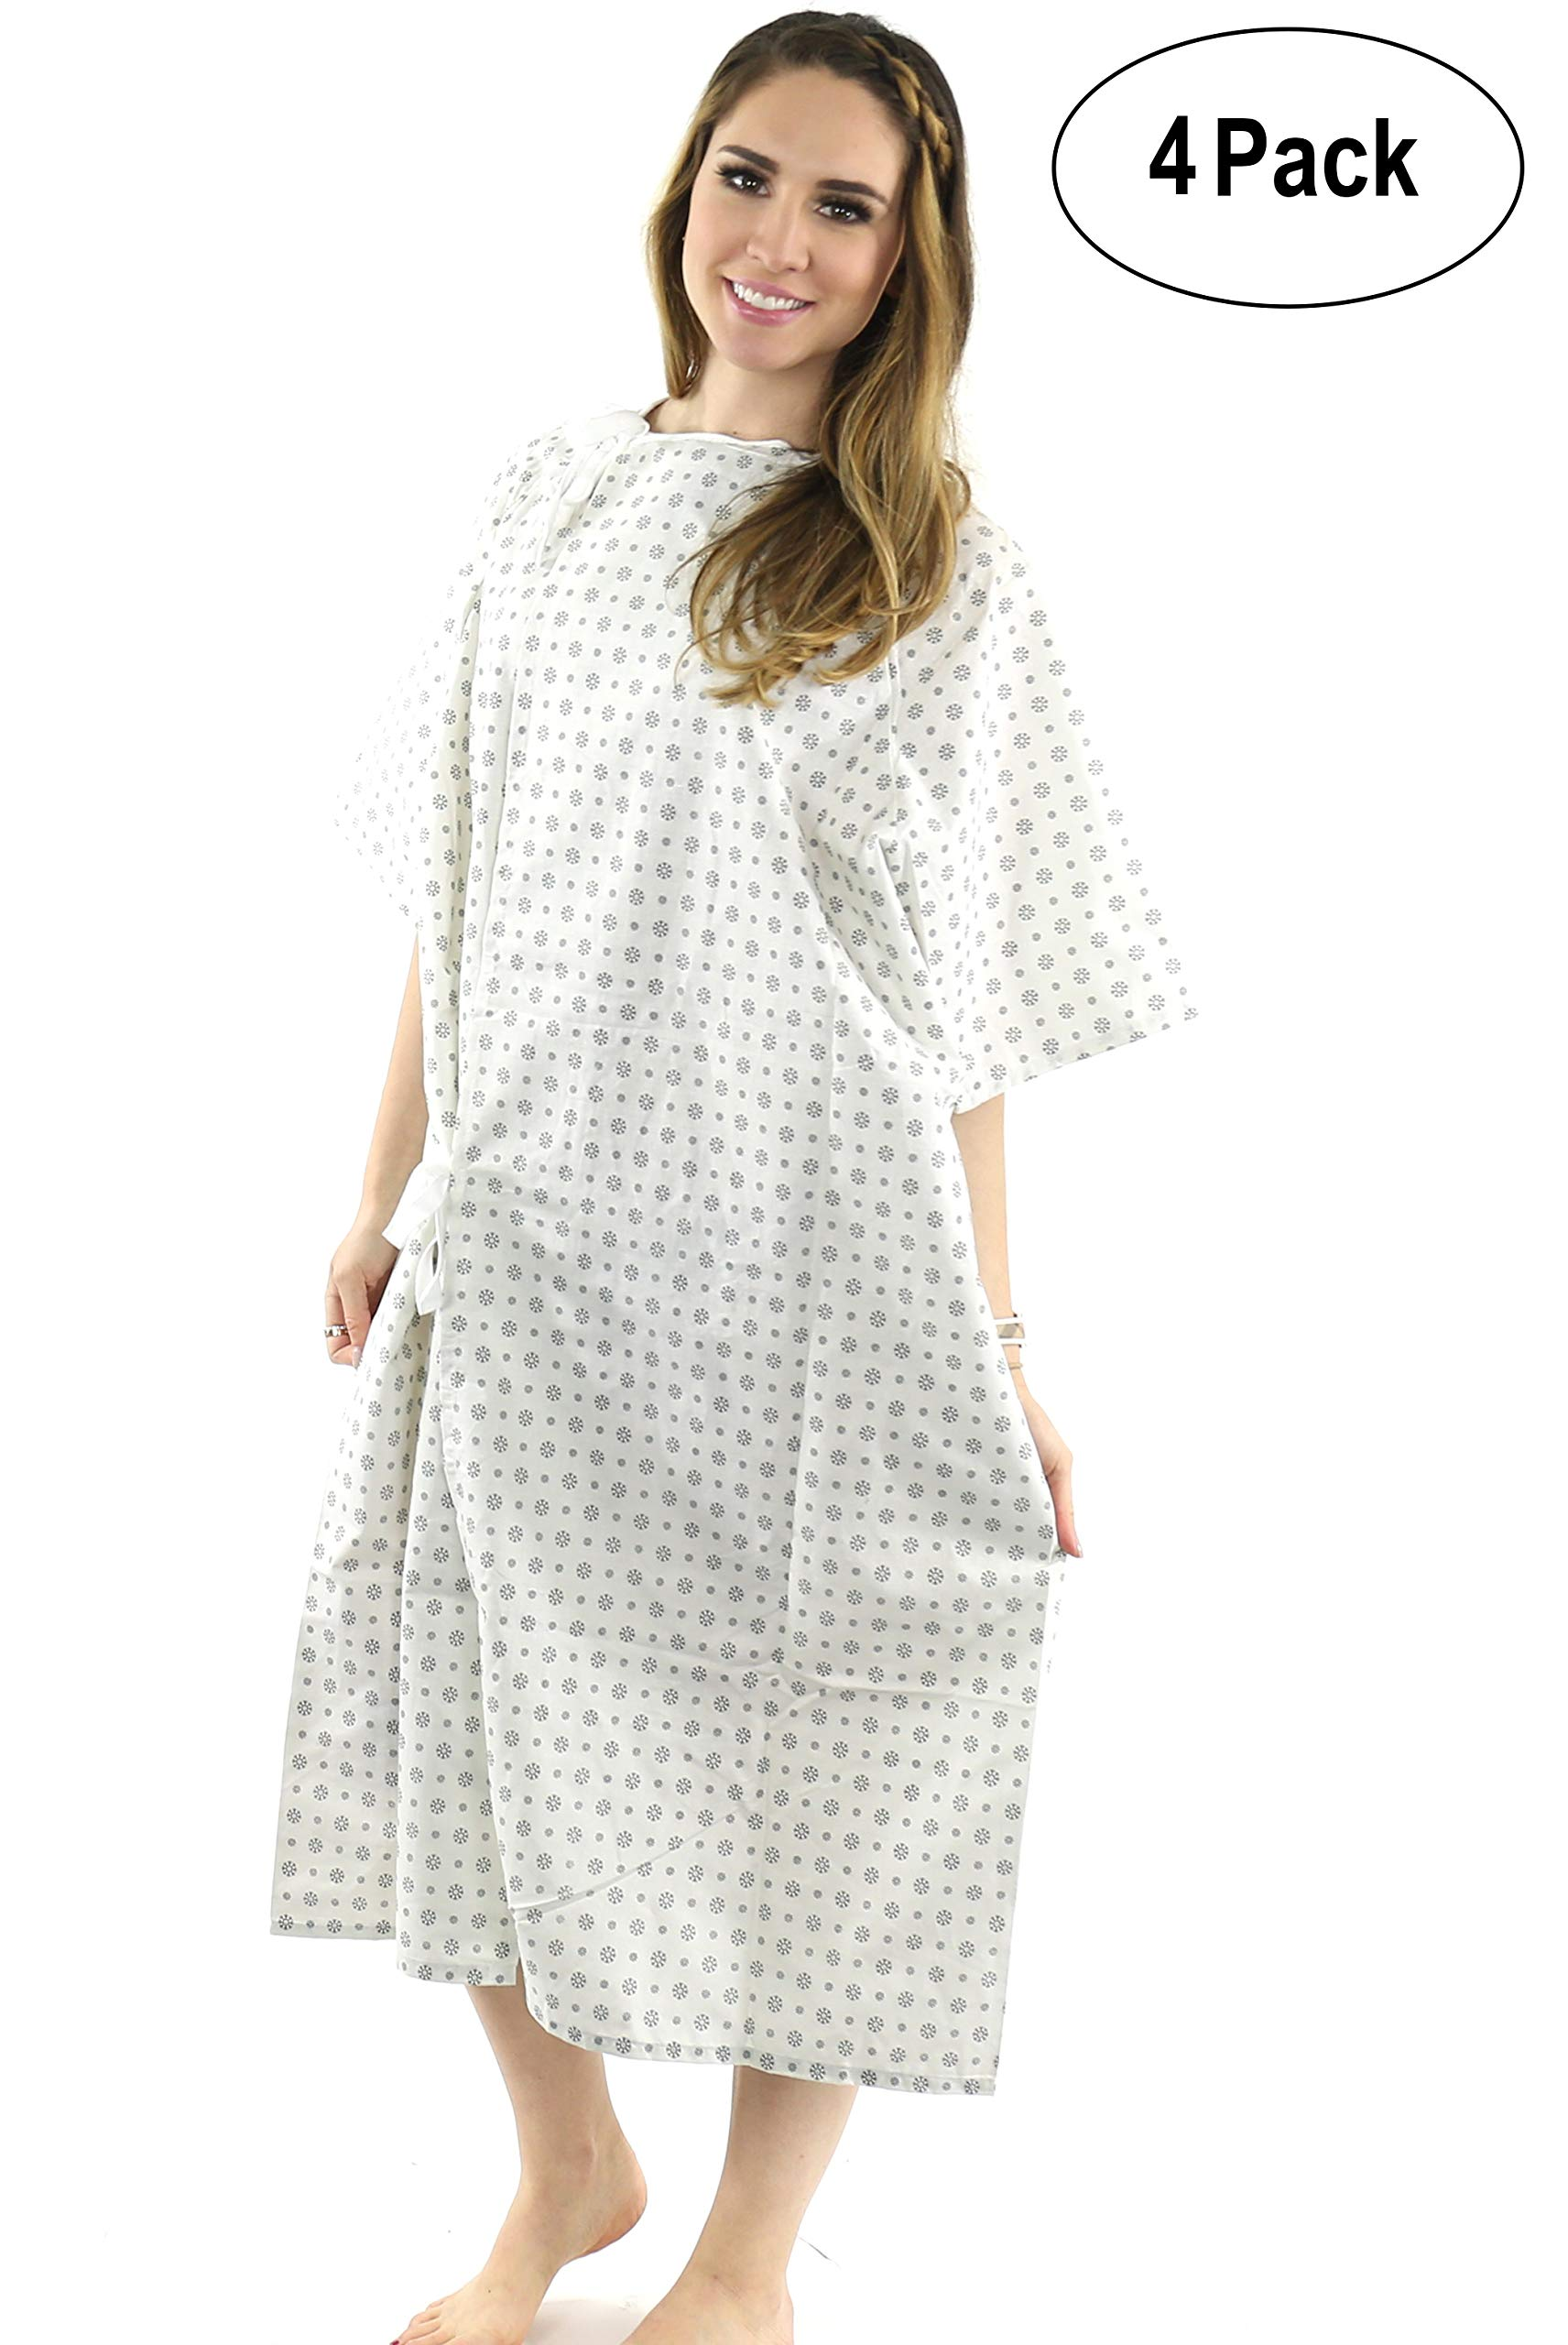 Hospital Gown (4 Pack) Cotton Blend Useful Fashionable Patient Gowns Back Tie 46'' L& 66'' W Fits All Sizes to 2XL Sizes Fit Comfortably - Hospital Gown